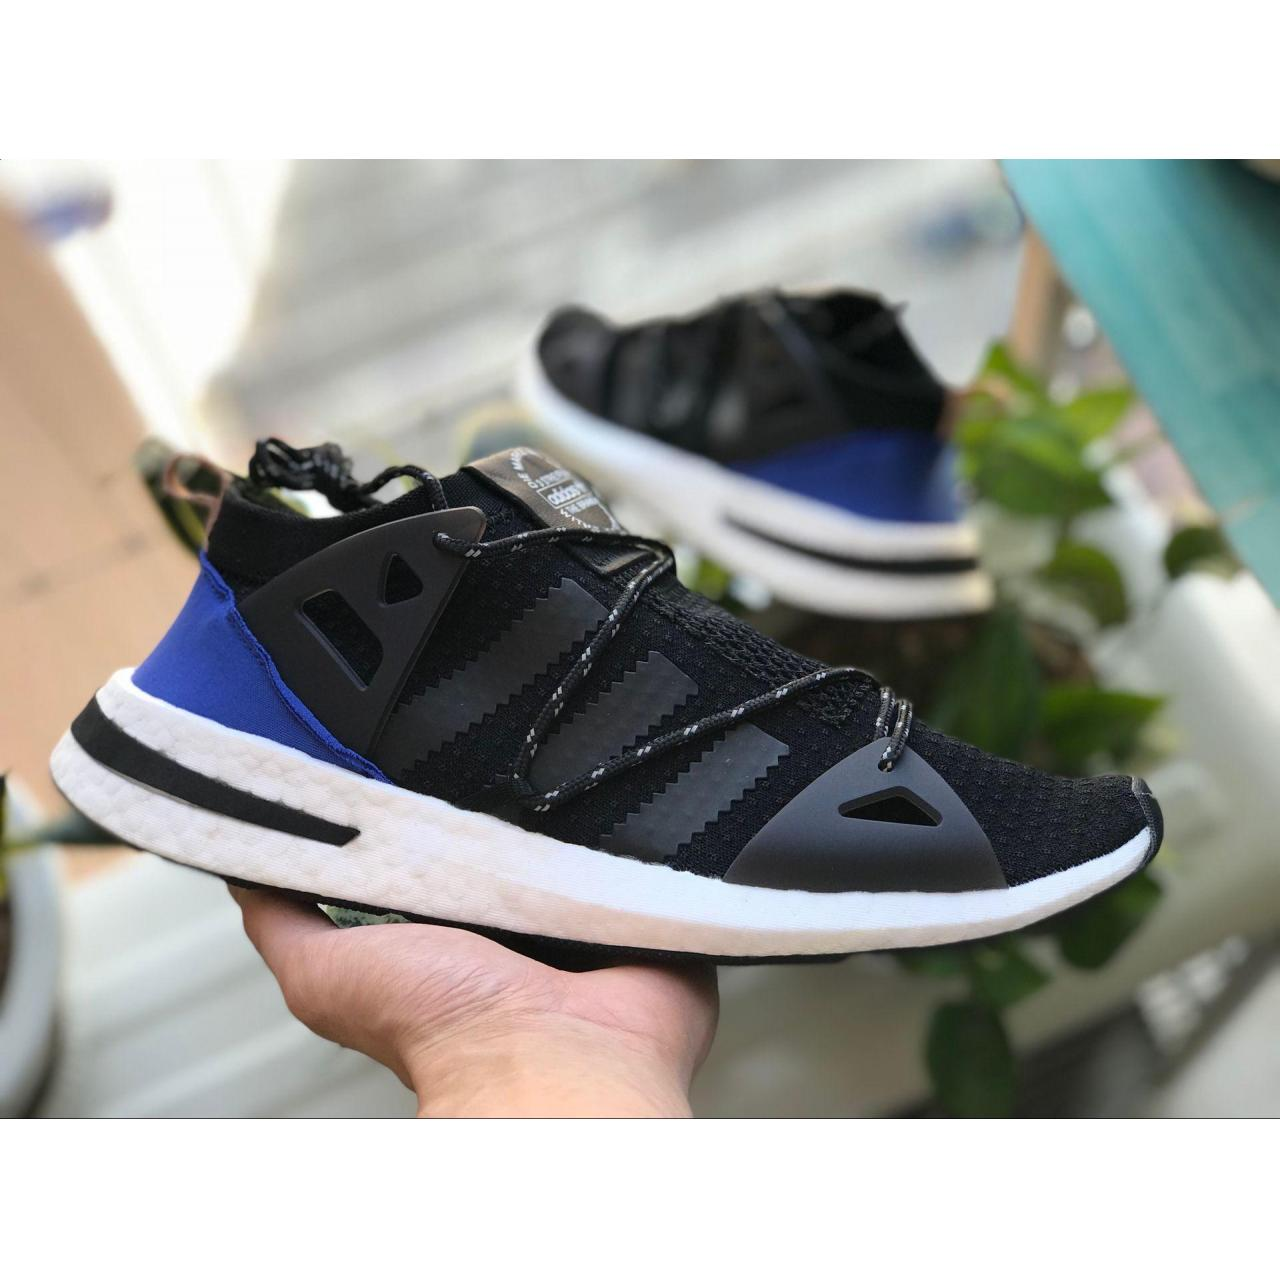 China 2018 NEW SHOES Adidas EQT Adidas NMD Adidas Shoes High quality wholesale price on sale